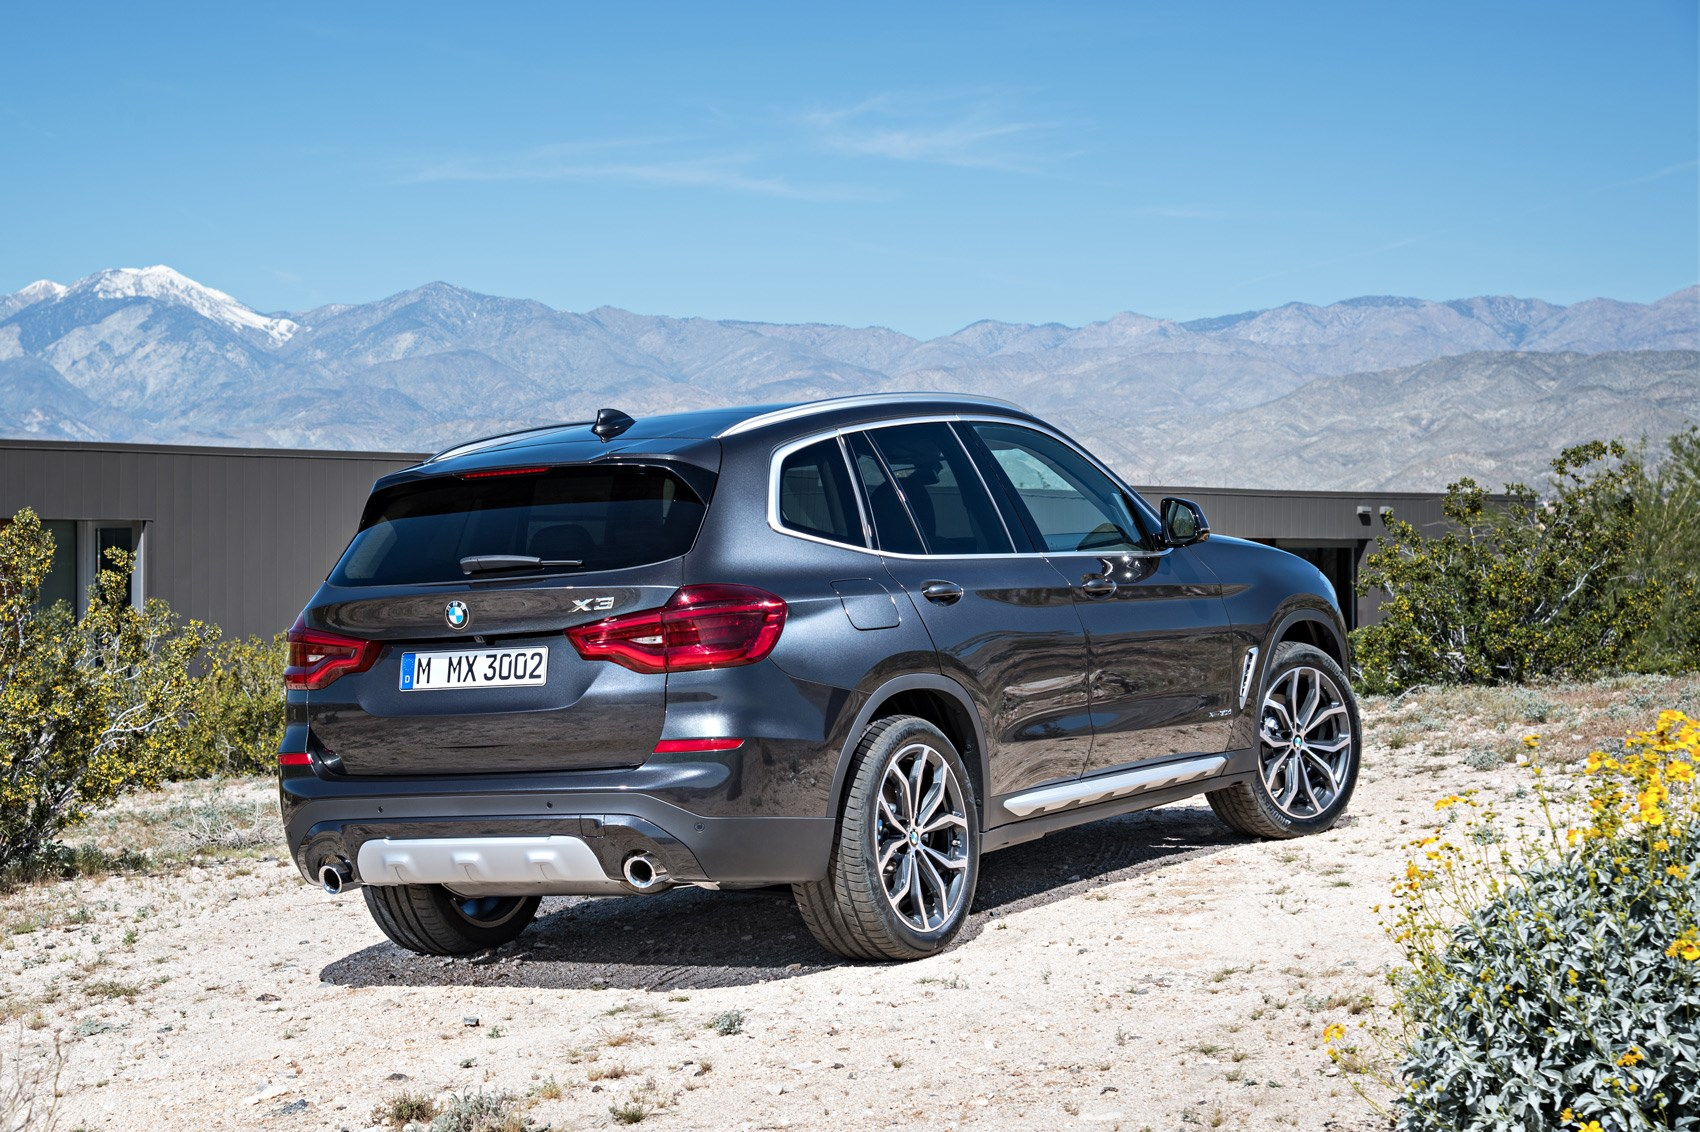 new bmw x3 suv revealed munich 39 s photocopier is working fine by car magazine. Black Bedroom Furniture Sets. Home Design Ideas